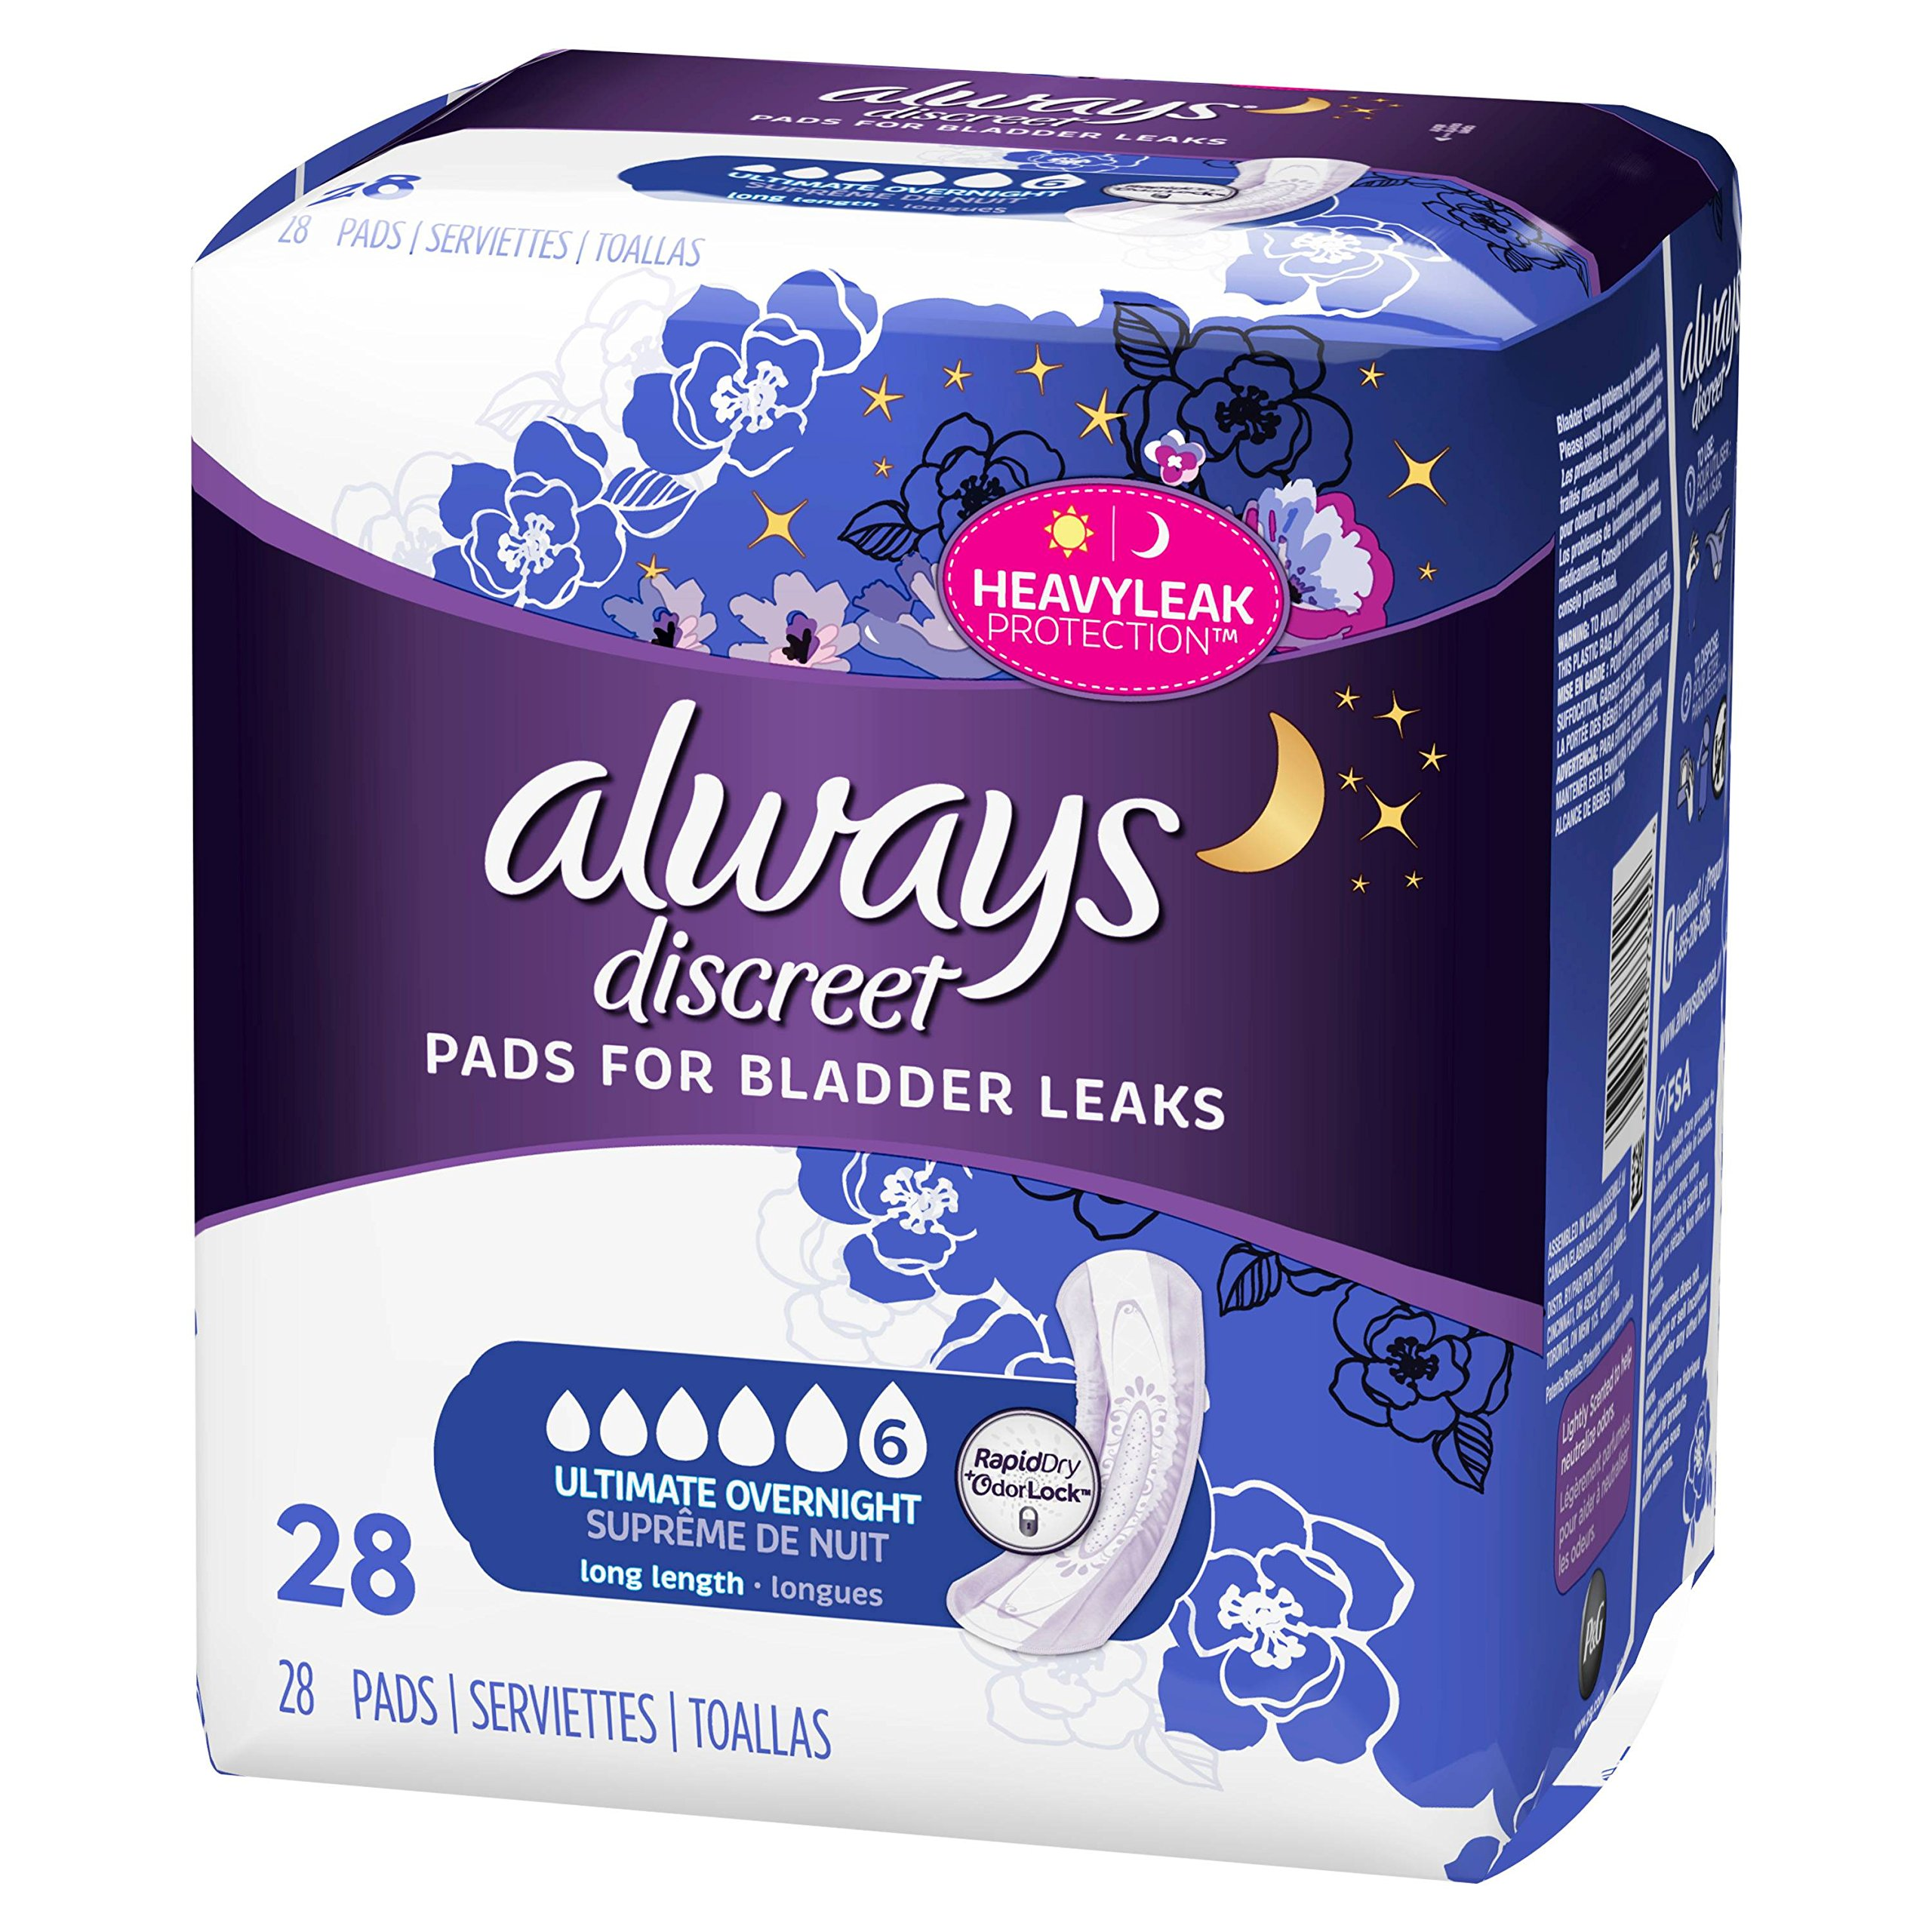 Always Discreet for Bladder Leaks, Ultimate Overnight, Long Length, 28 Pads (Pack of 2)